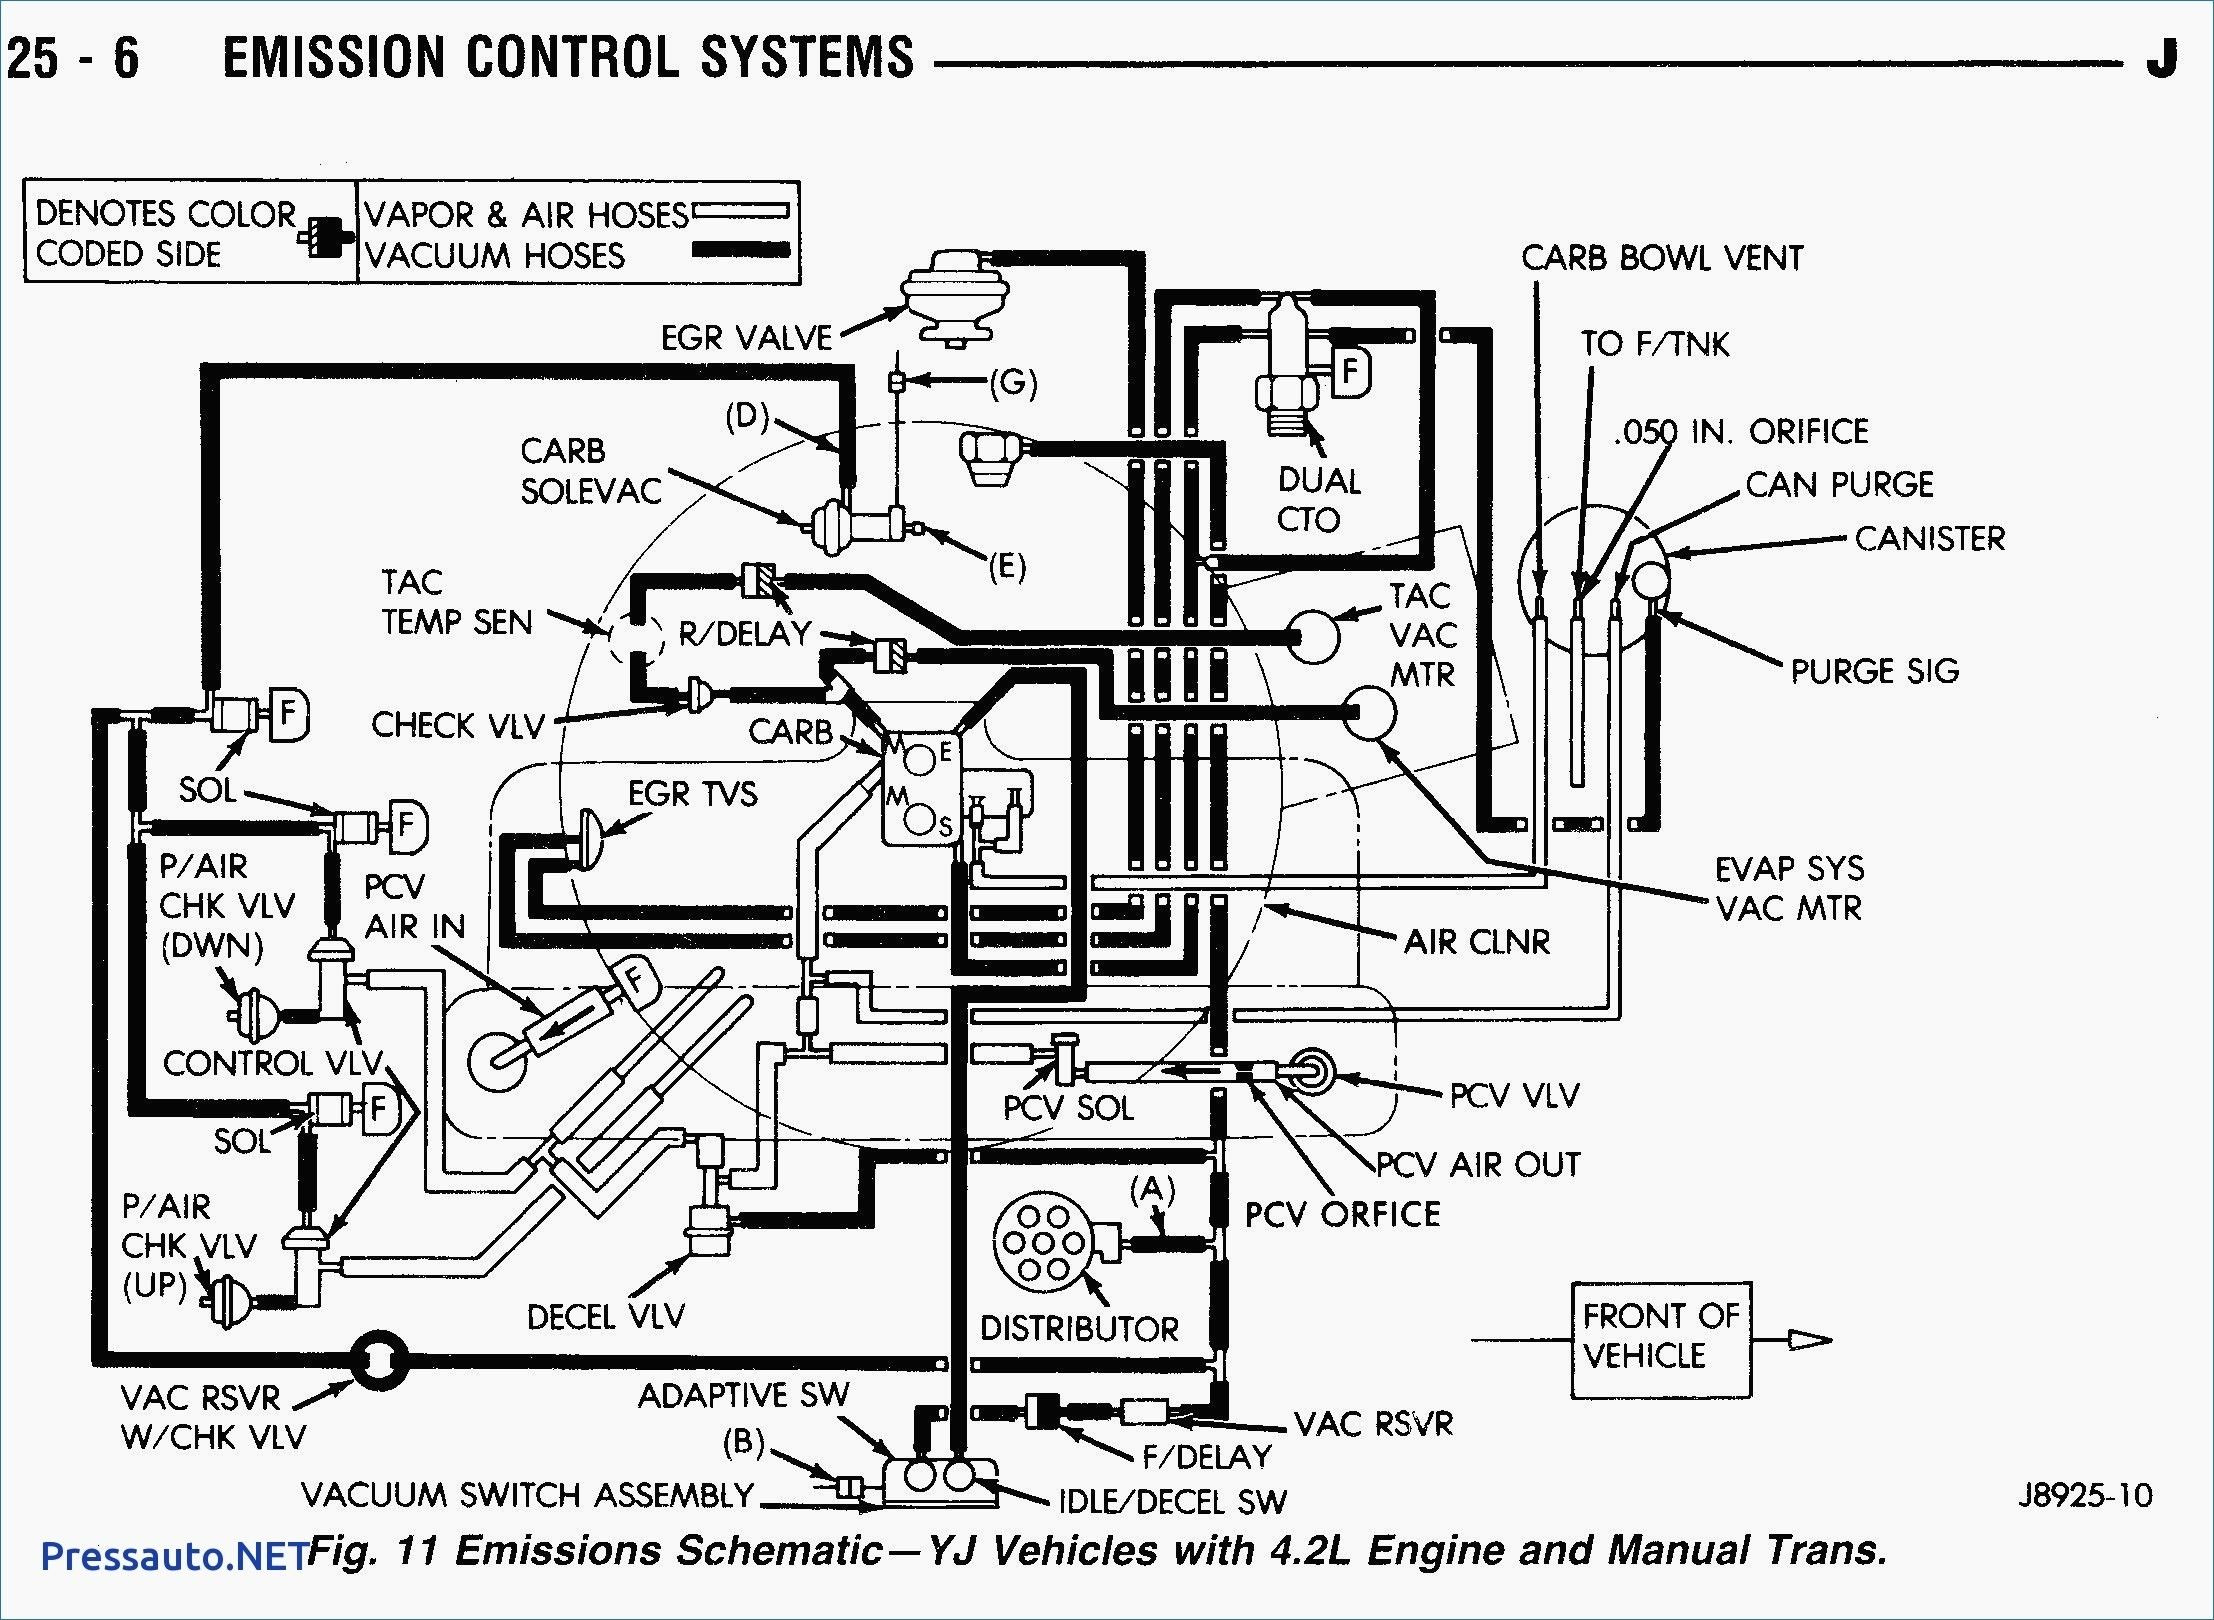 1995 jeep wrangler 2 5l wiring diagrams wiring diagram view 2 5l jeep engine diagram wiring [ 2214 x 1620 Pixel ]